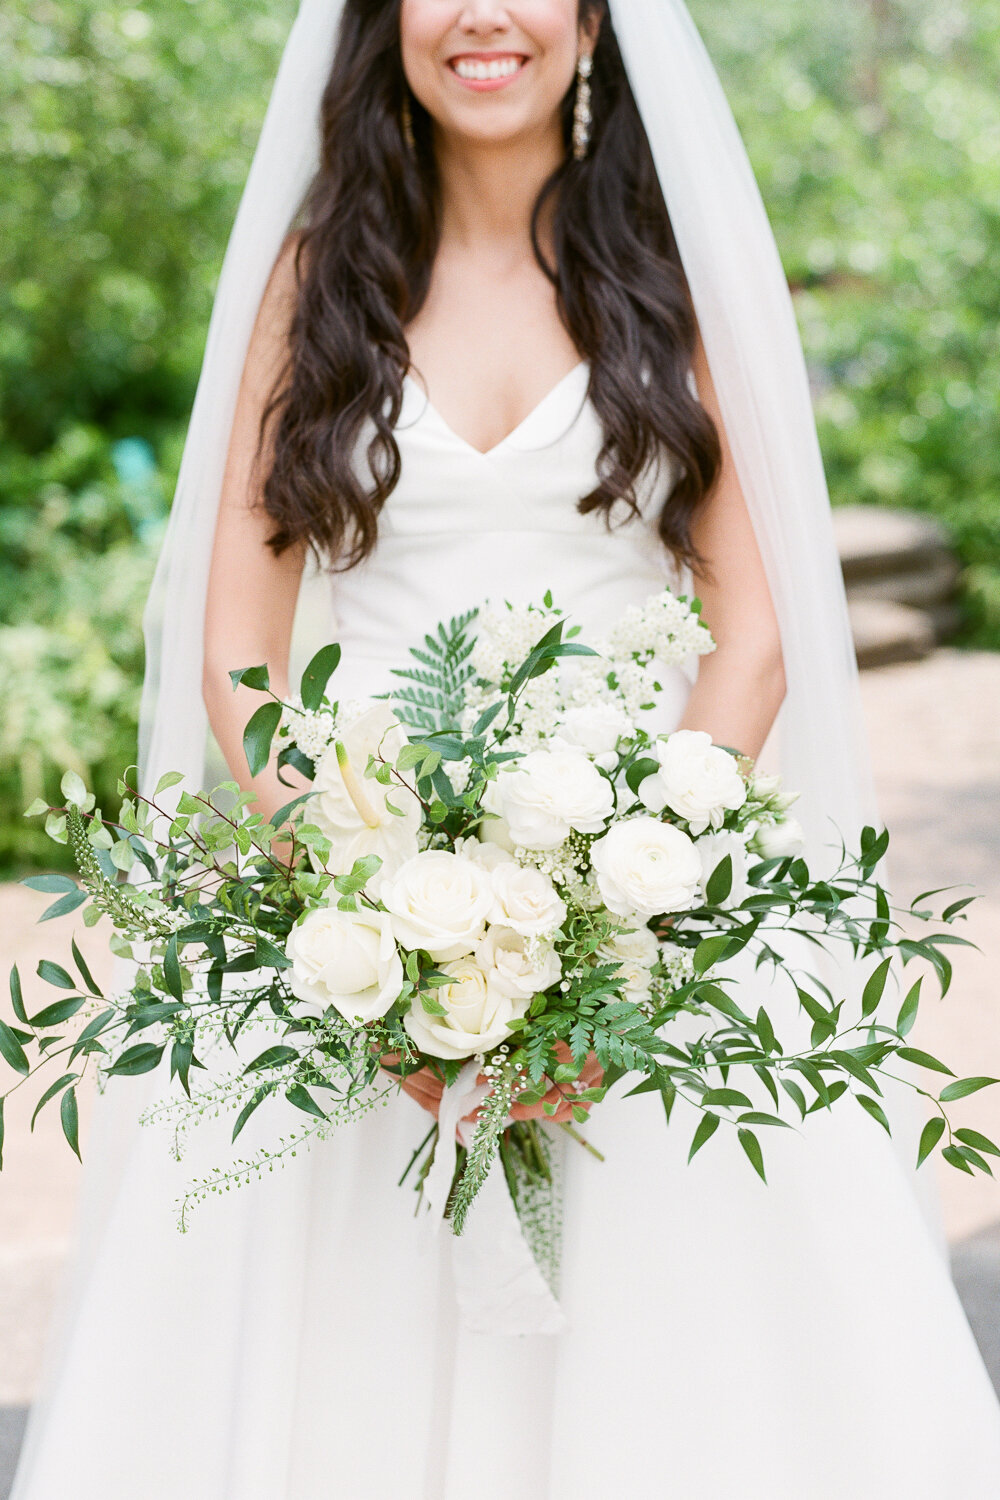 Green and White Wedding Bouquet by Starling